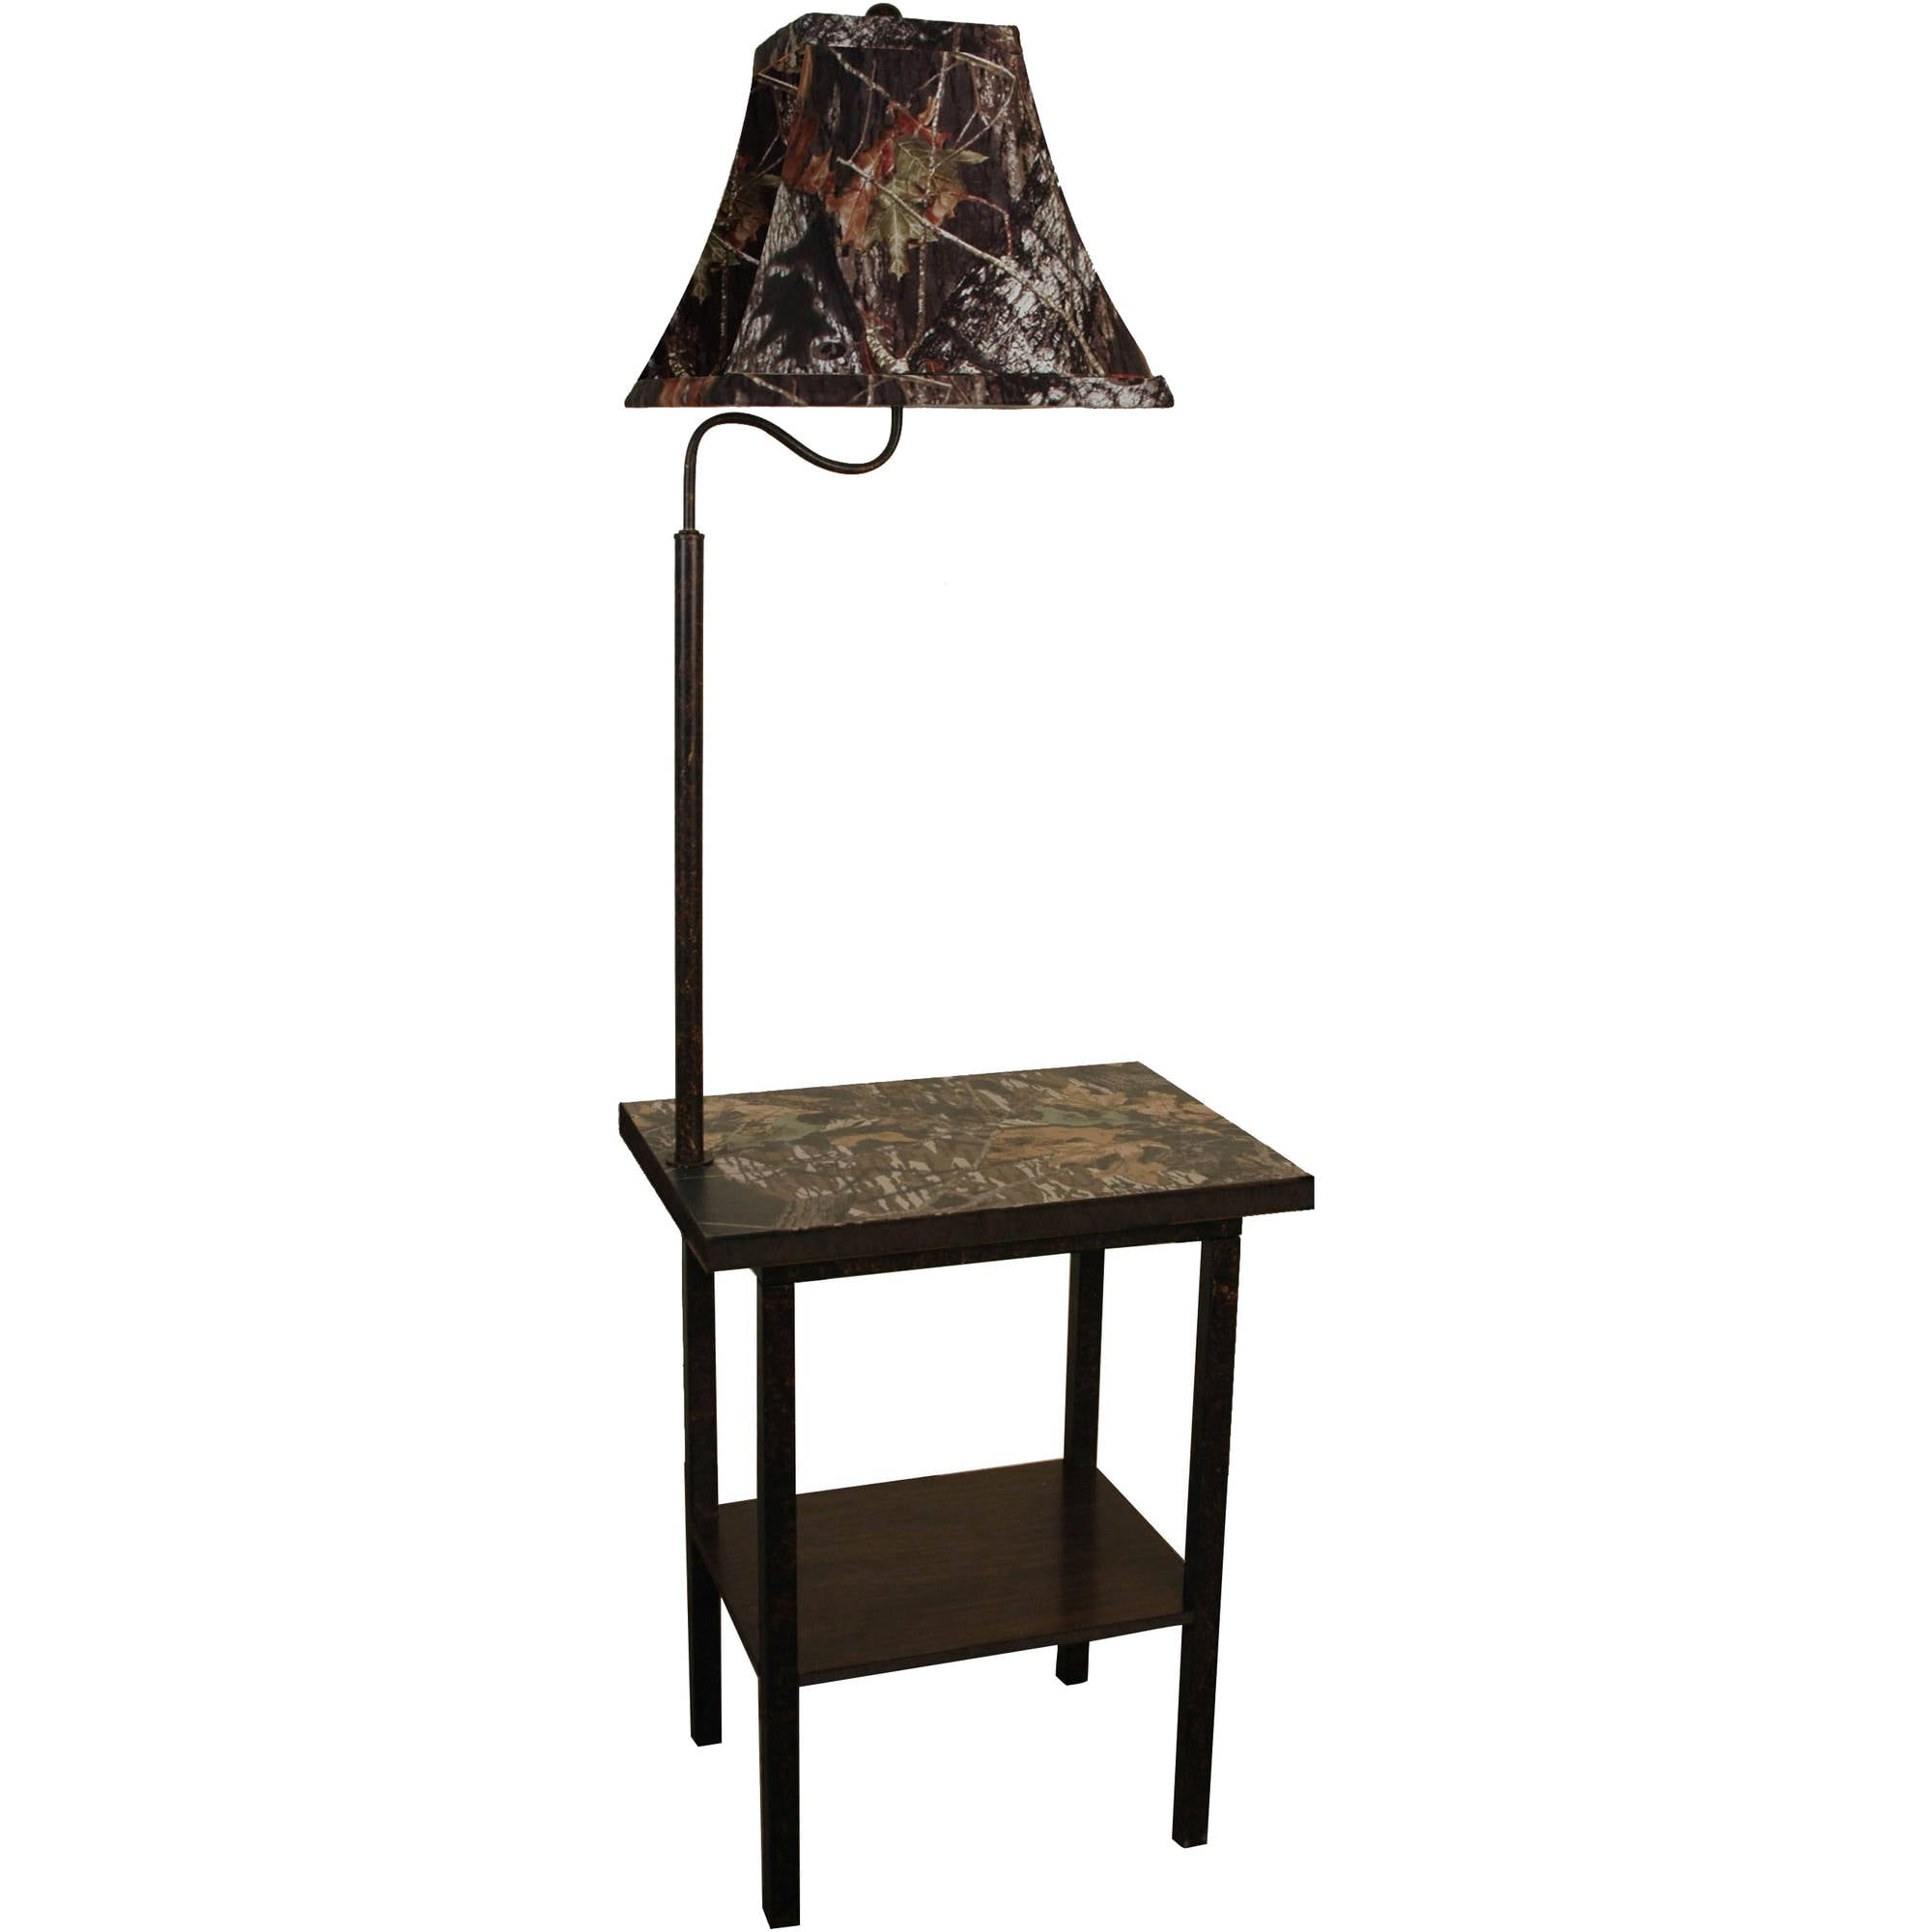 Mossy oak furniture rustic end table top with built in floor lamp details mossy oak furniture rustic end table aloadofball Choice Image